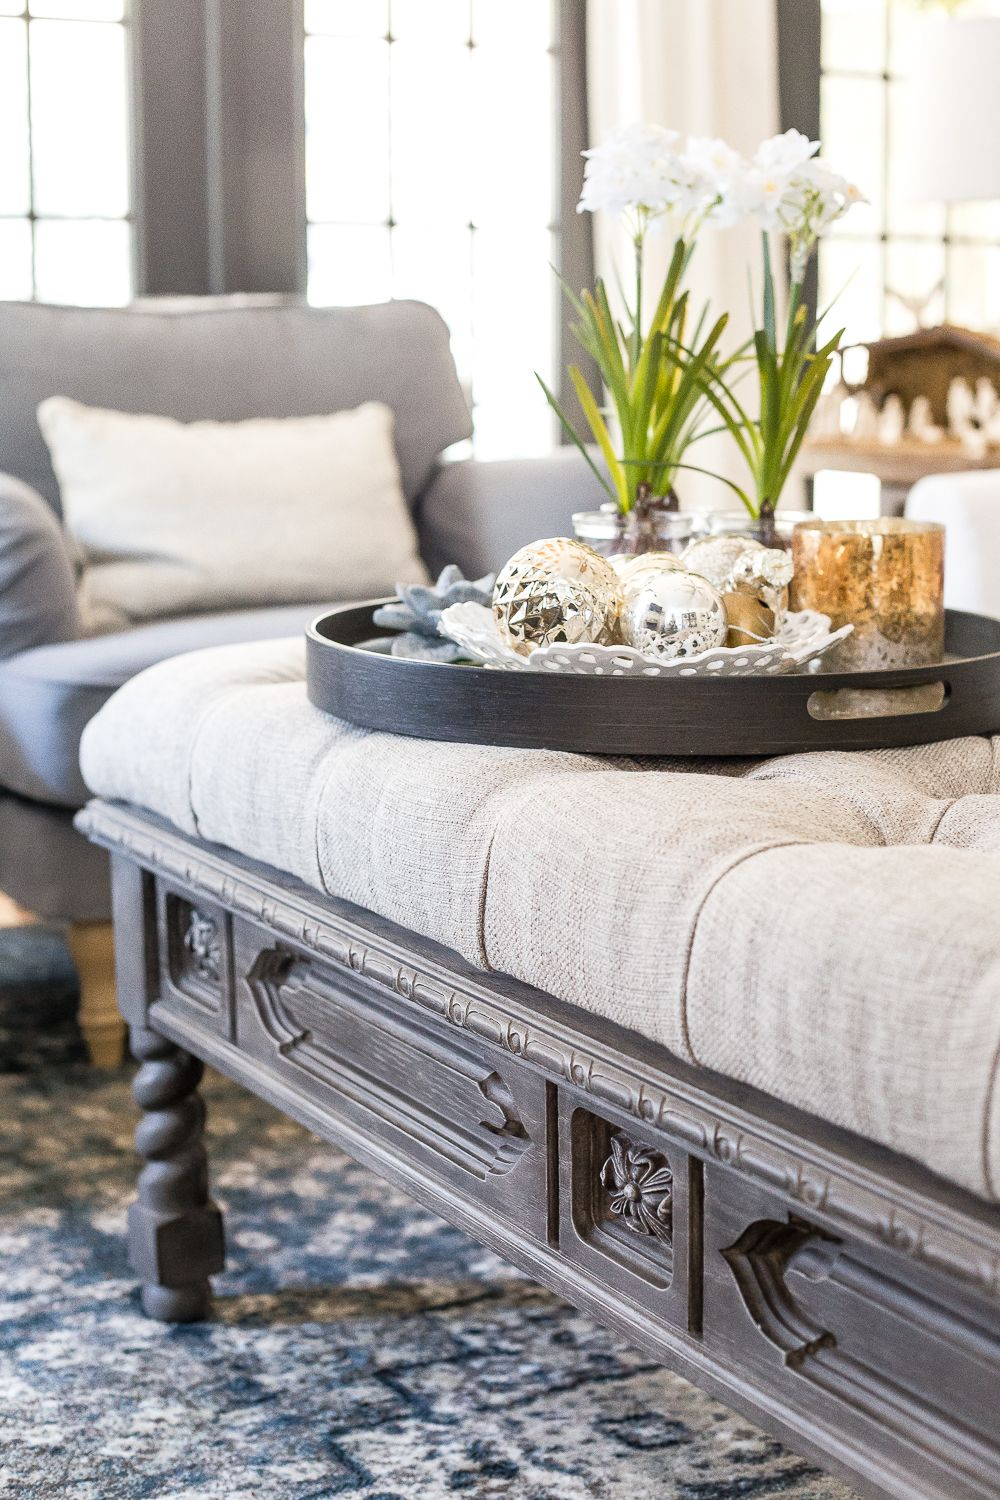 DIY Ottoman Bench from a Repurposed Coffee Table | Arreglos florales ...